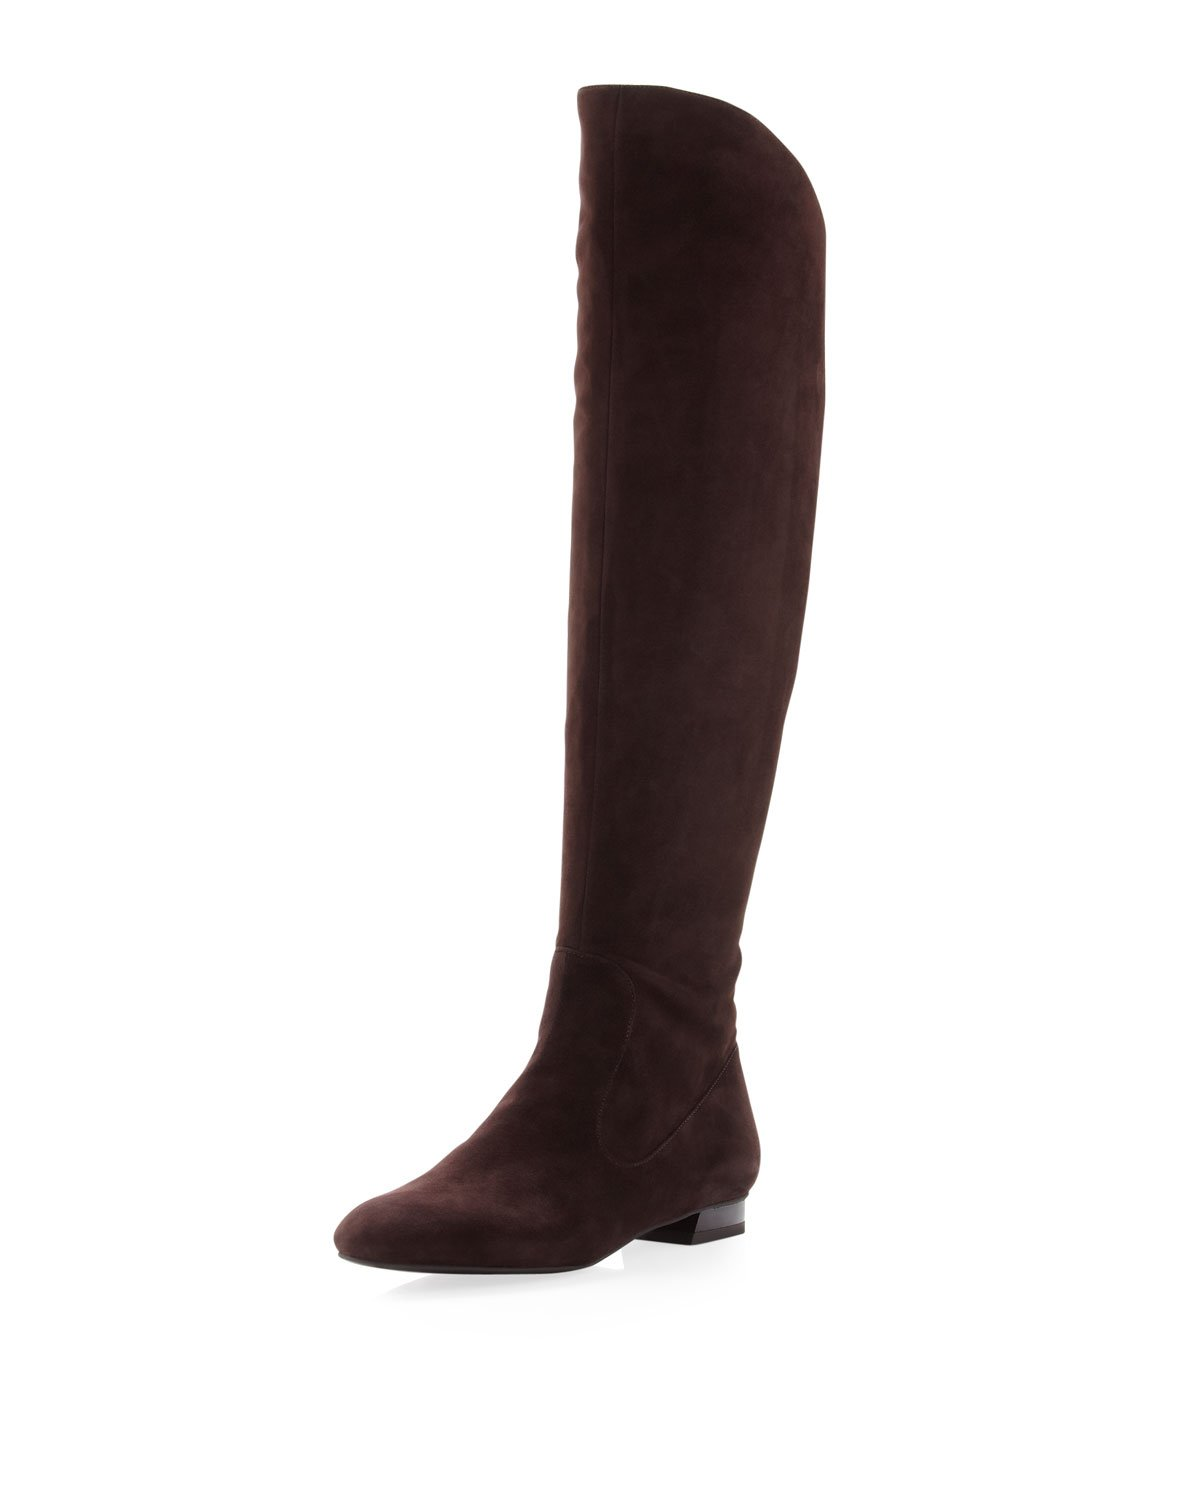 via spiga kailey suede boot in brown tmoro lyst